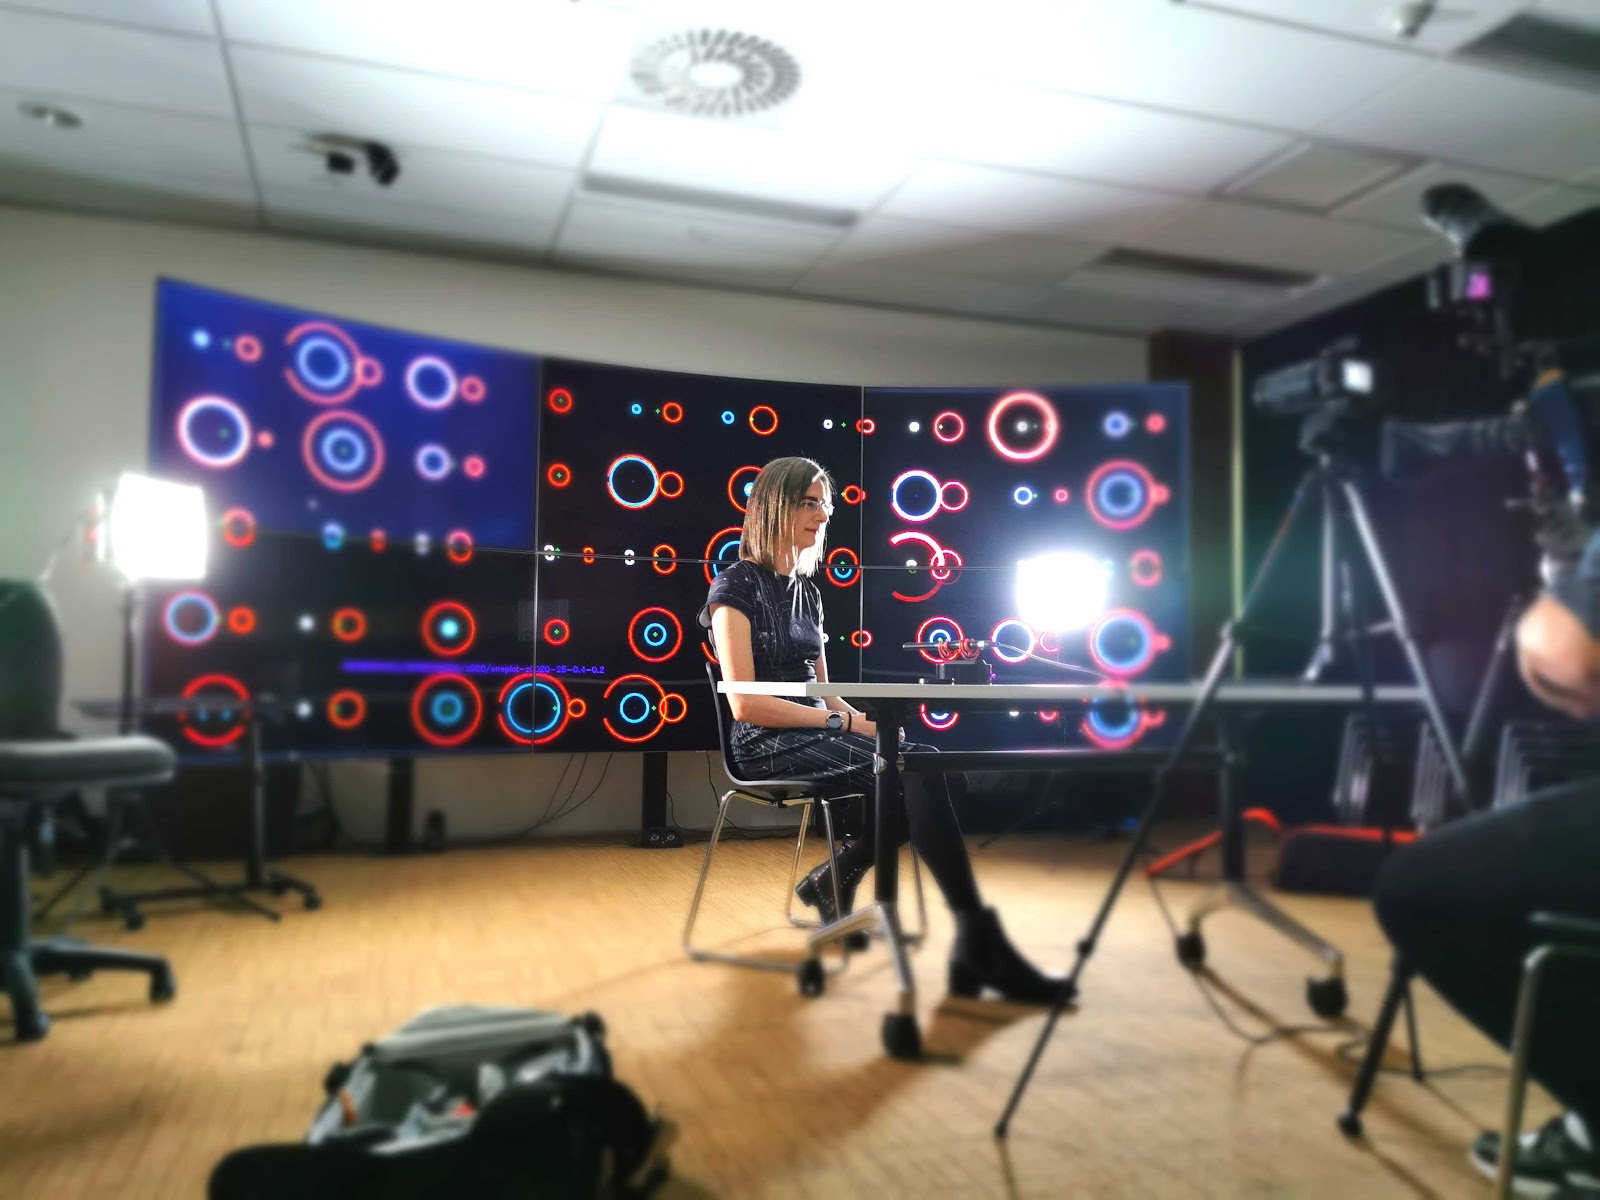 JJ recording a short video on their research. Credit: Heloise Stevance